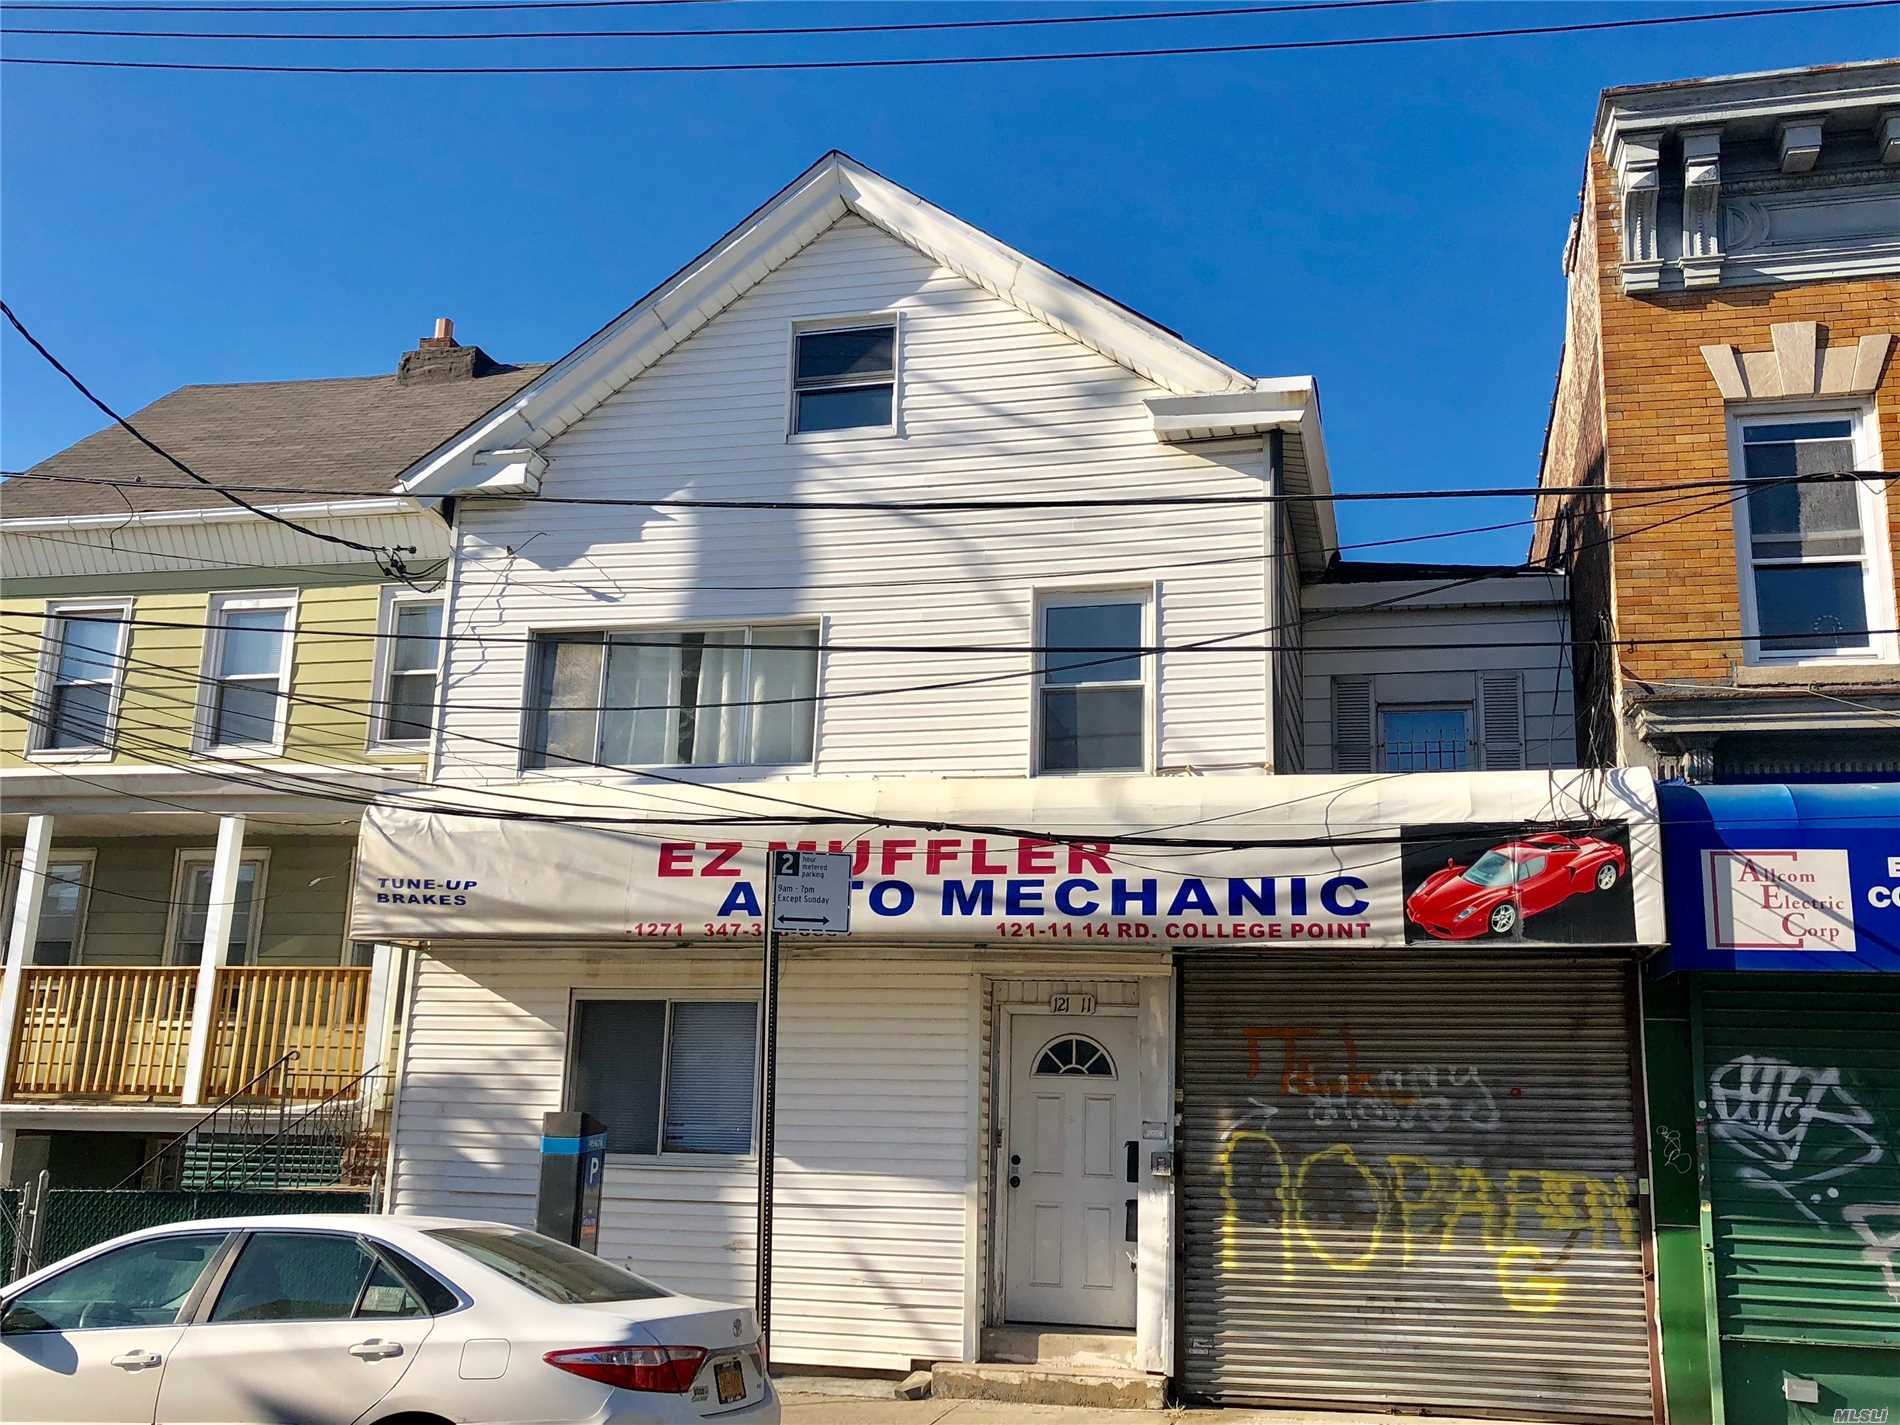 Photo of home for sale at 121-11 14 Rd, College Point NY